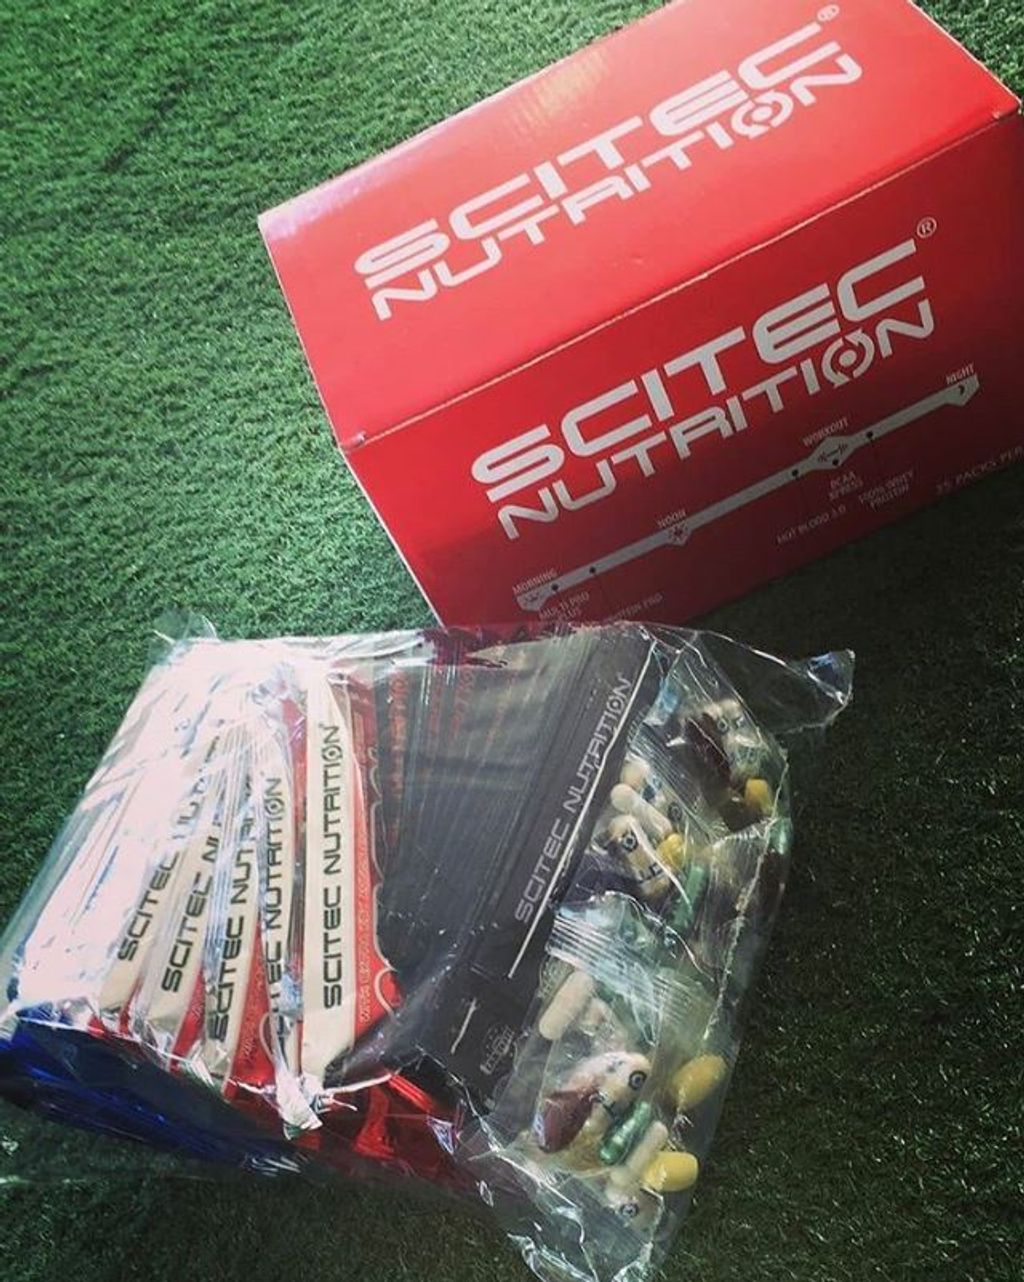 scitec trail pack with multipro in malaysia www.proteinlab.com.my.JPG